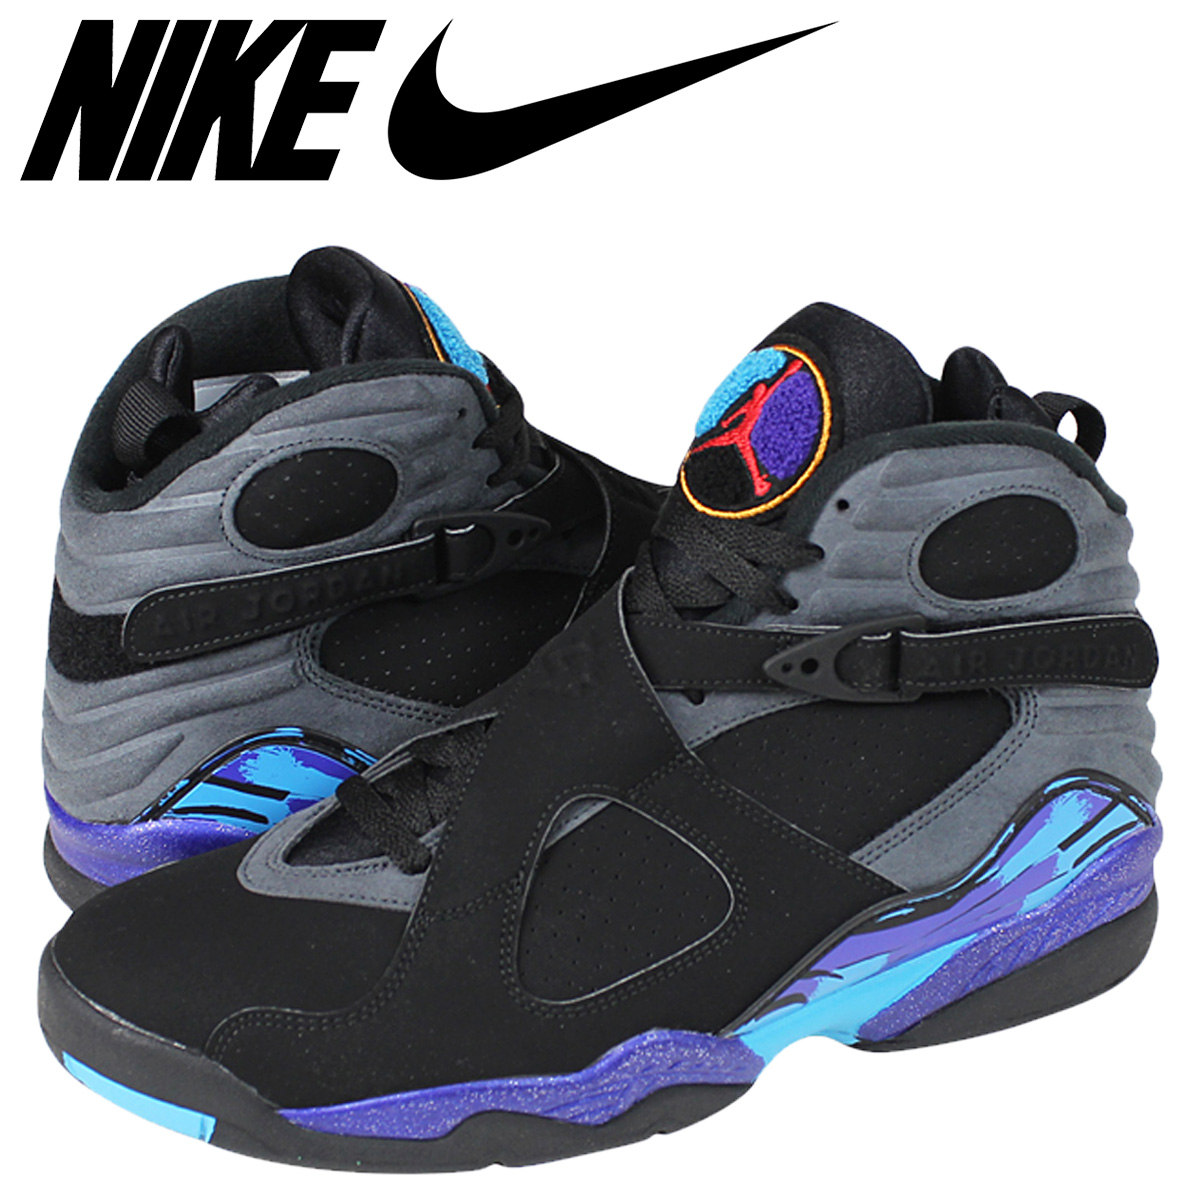 Nike NIKE Air Jordan sneakers AIR JORDAN 8 RETRO AQUA Air Jordan retro 8 Aqua 305381 025 black mens